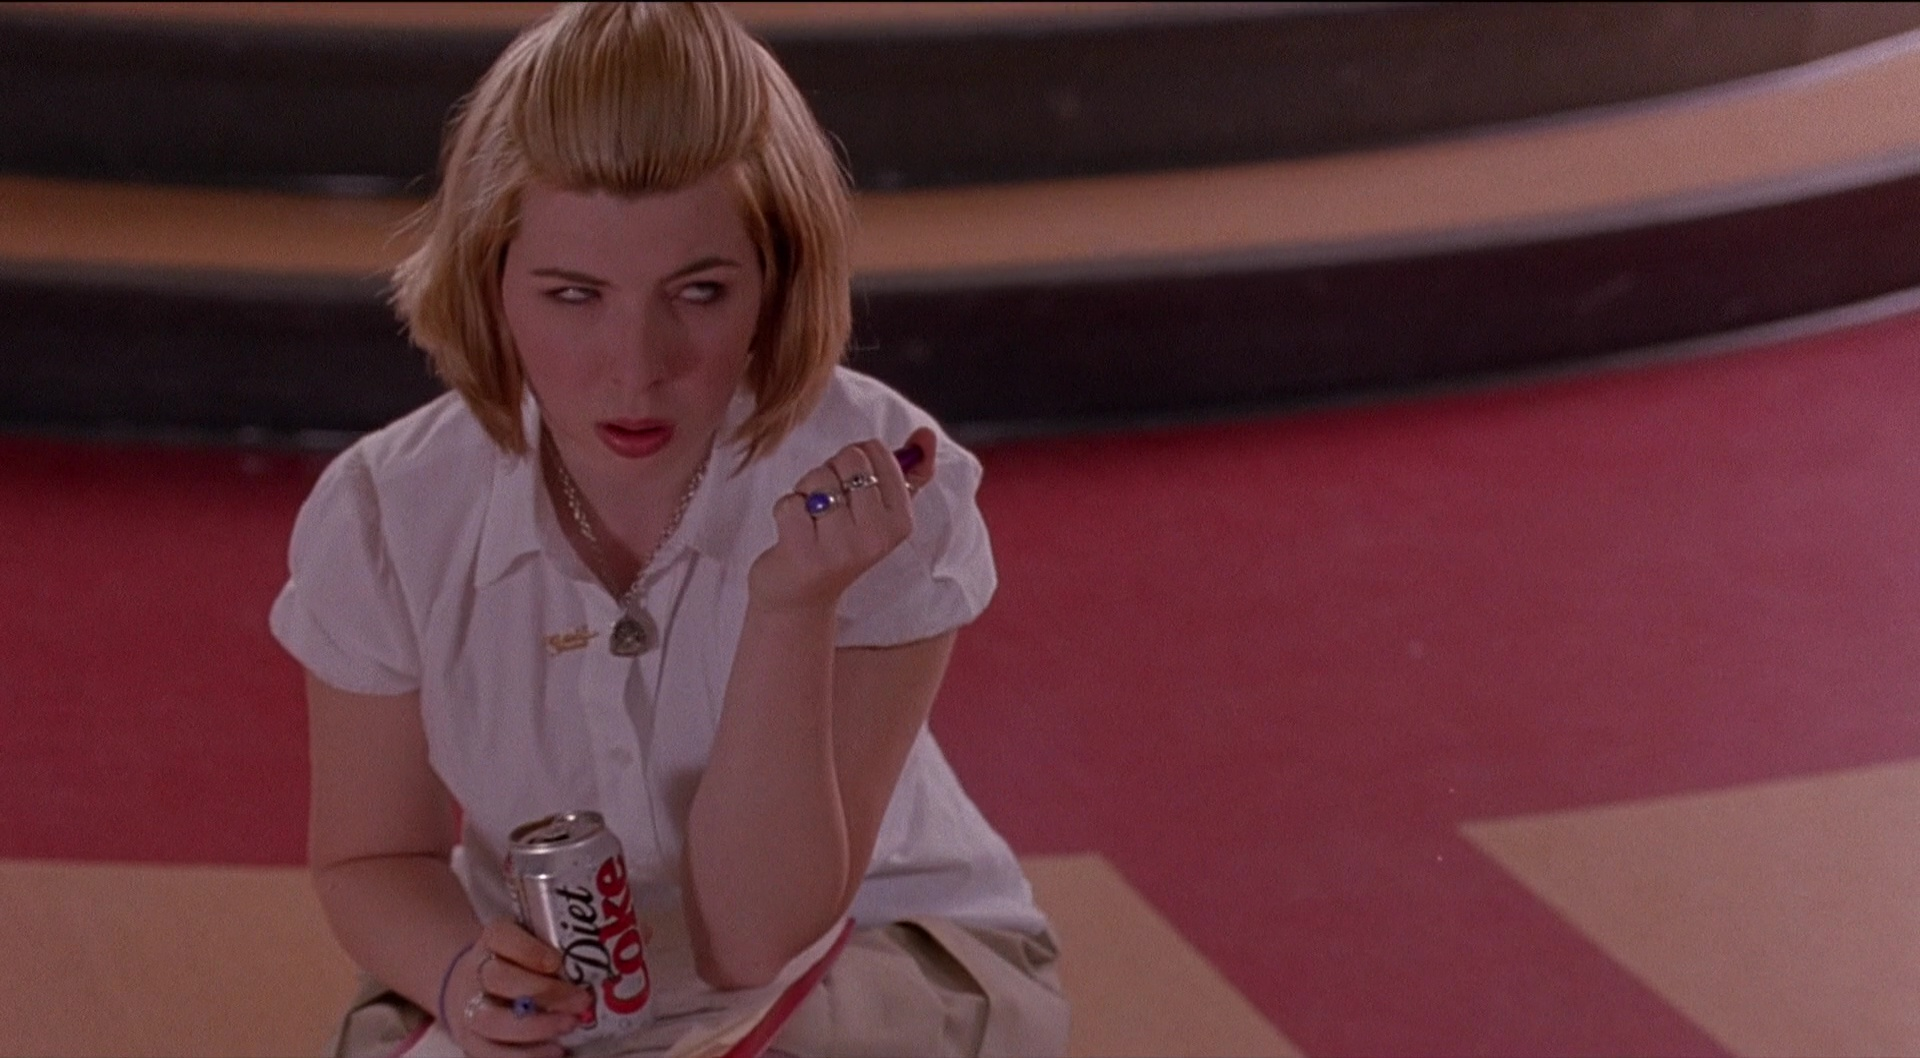 Diet Coke Drink By Heather Matarazzo In Saved 2004 Movie